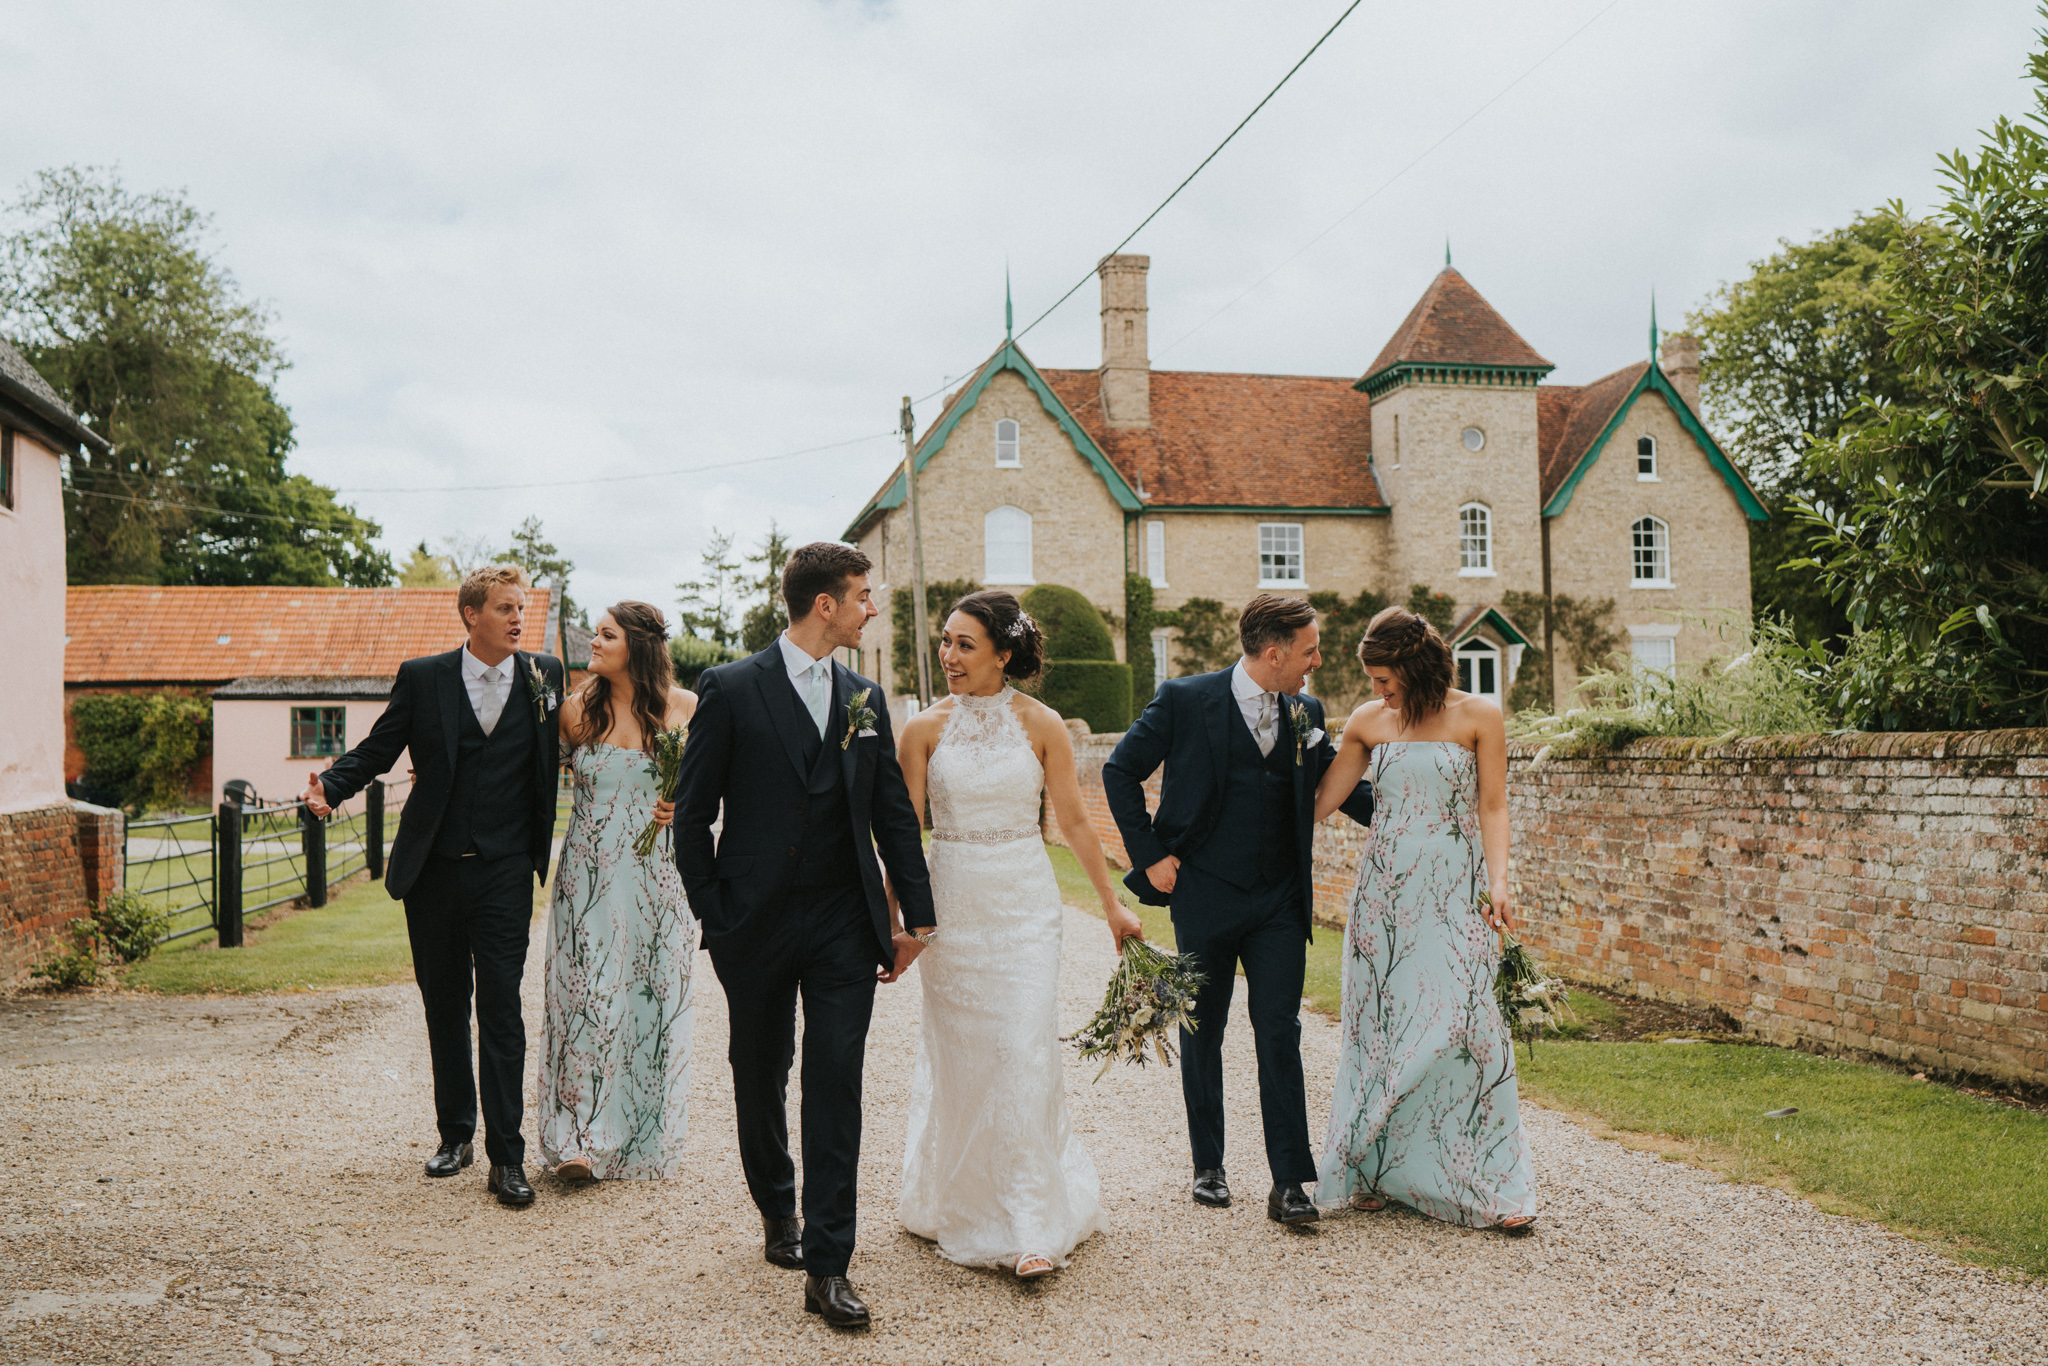 jane-patrick-smeetham-hall-barn-grace-elizabeth-colchester-essex-alternative-wedding-lifestyle-photographer-essex-suffolk-norfolk-devon (35 of 52).jpg